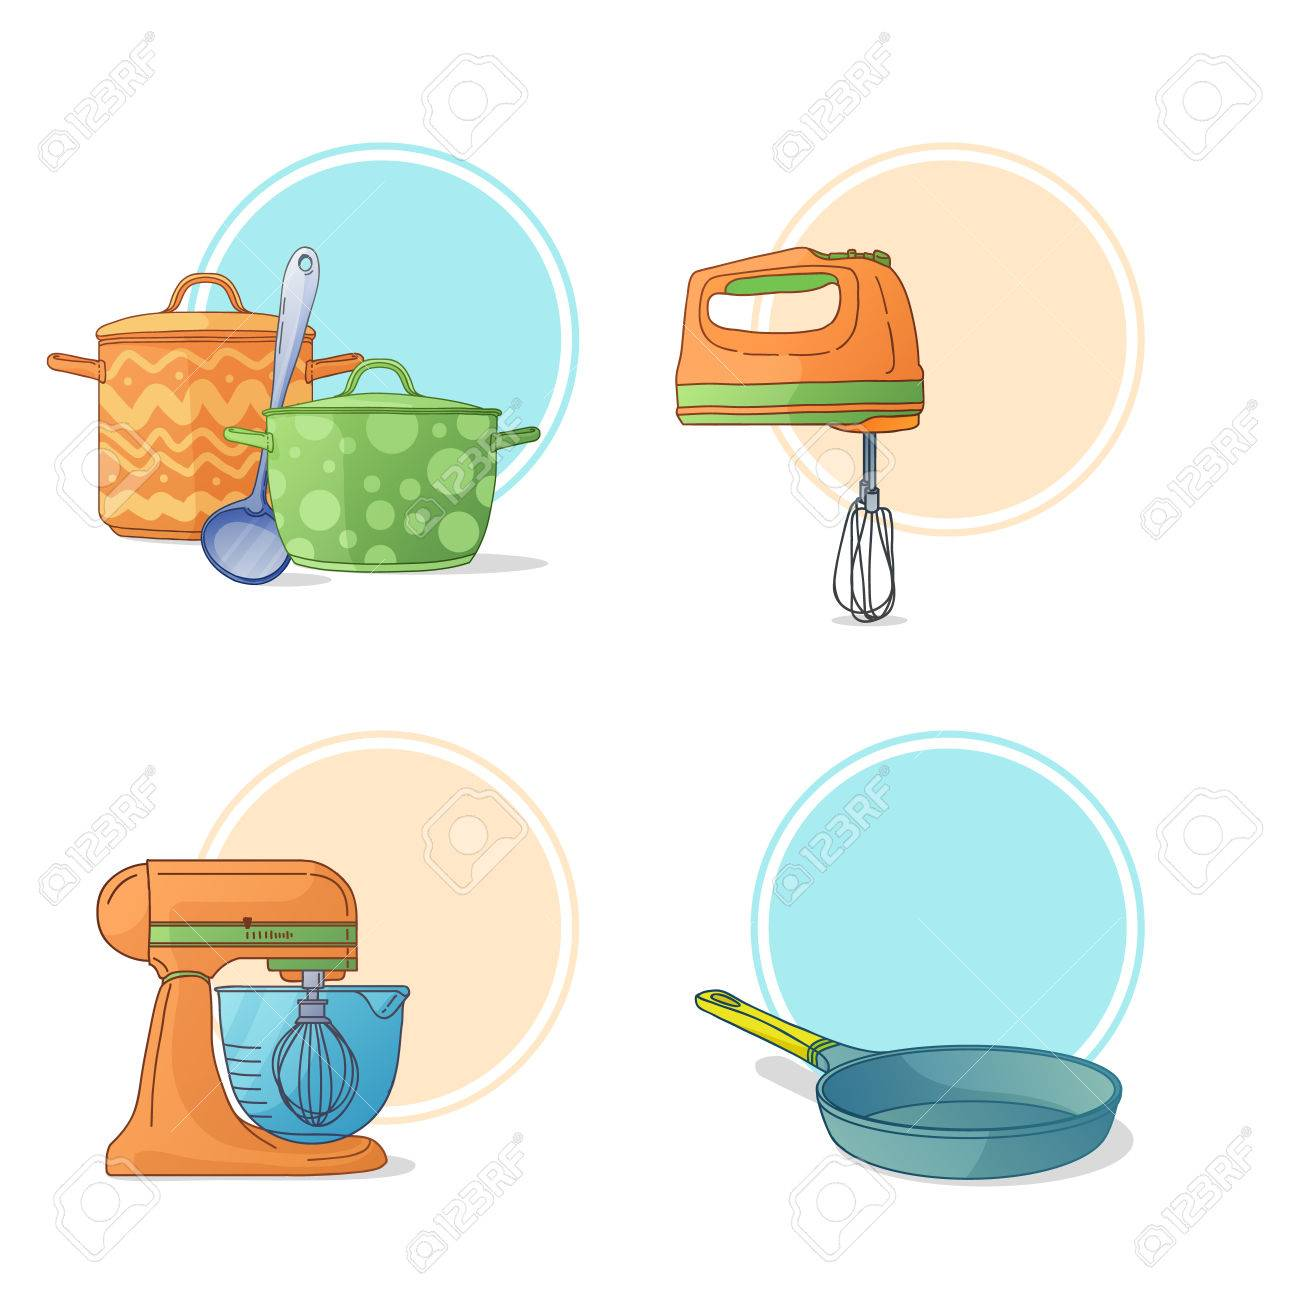 A Set Of Kitchen Utensils In A Cartoon Style Kitchen Tools And